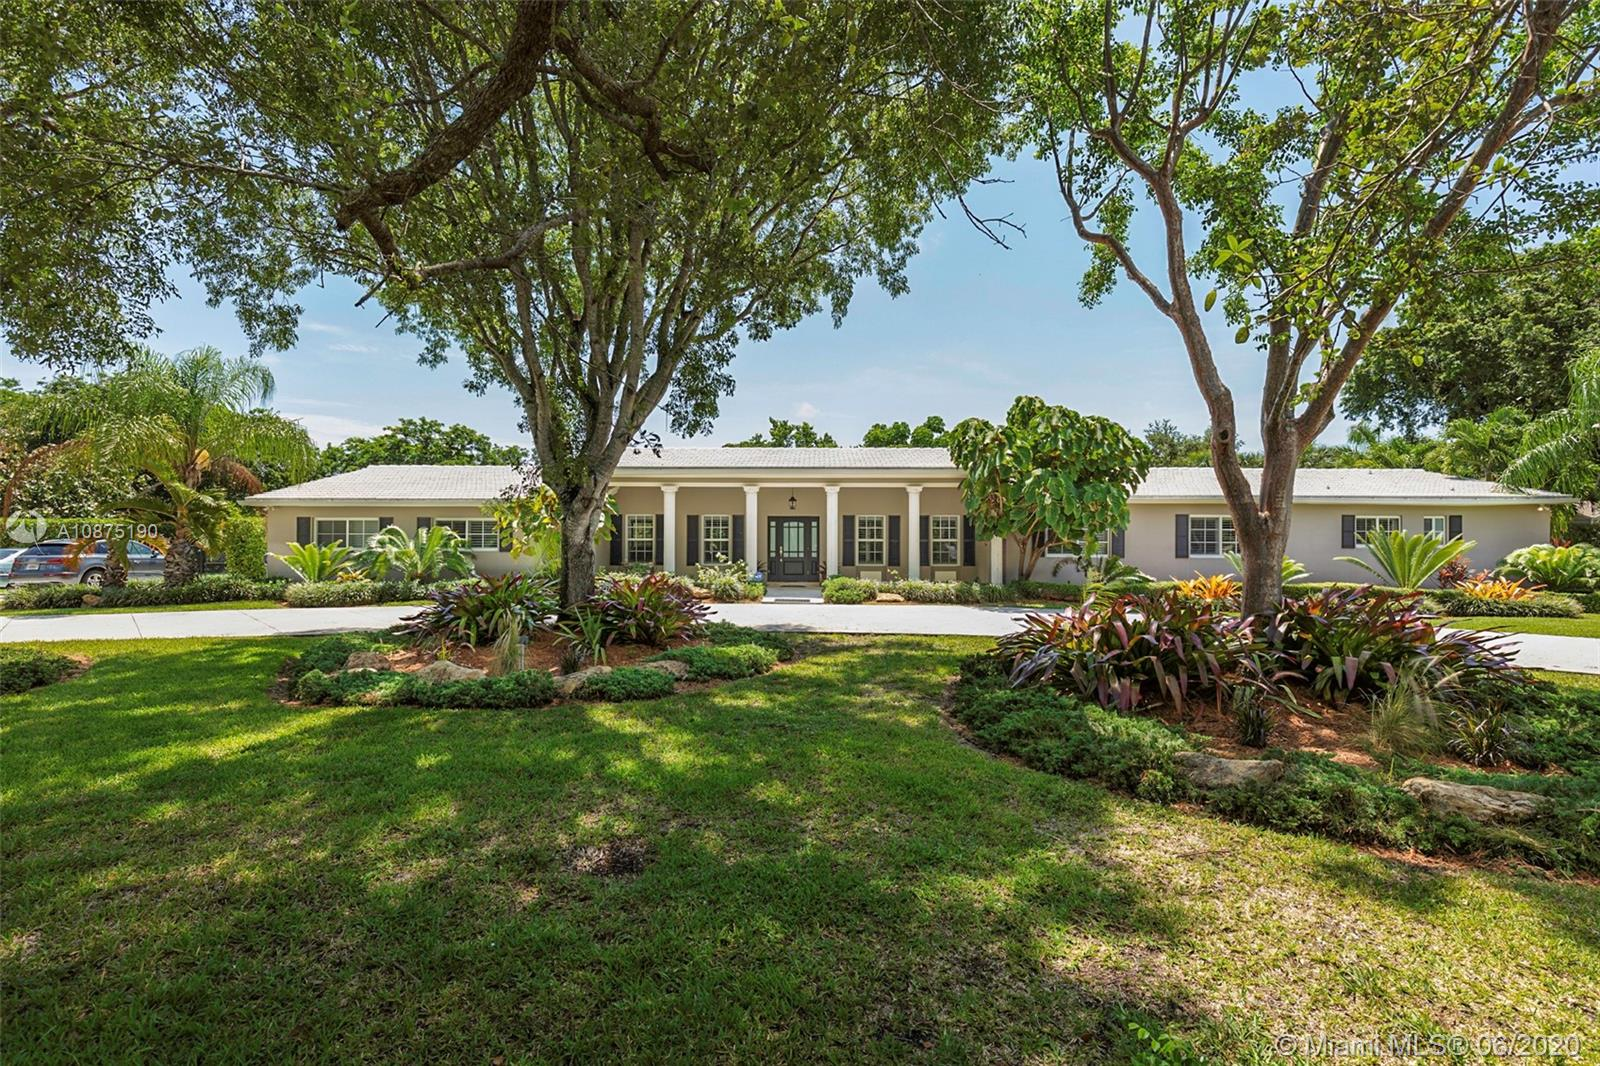 13025 SW 62nd Ave, Pinecrest, Florida 33156, 5 Bedrooms Bedrooms, ,4 BathroomsBathrooms,Residential,For Sale,13025 SW 62nd Ave,A10875190